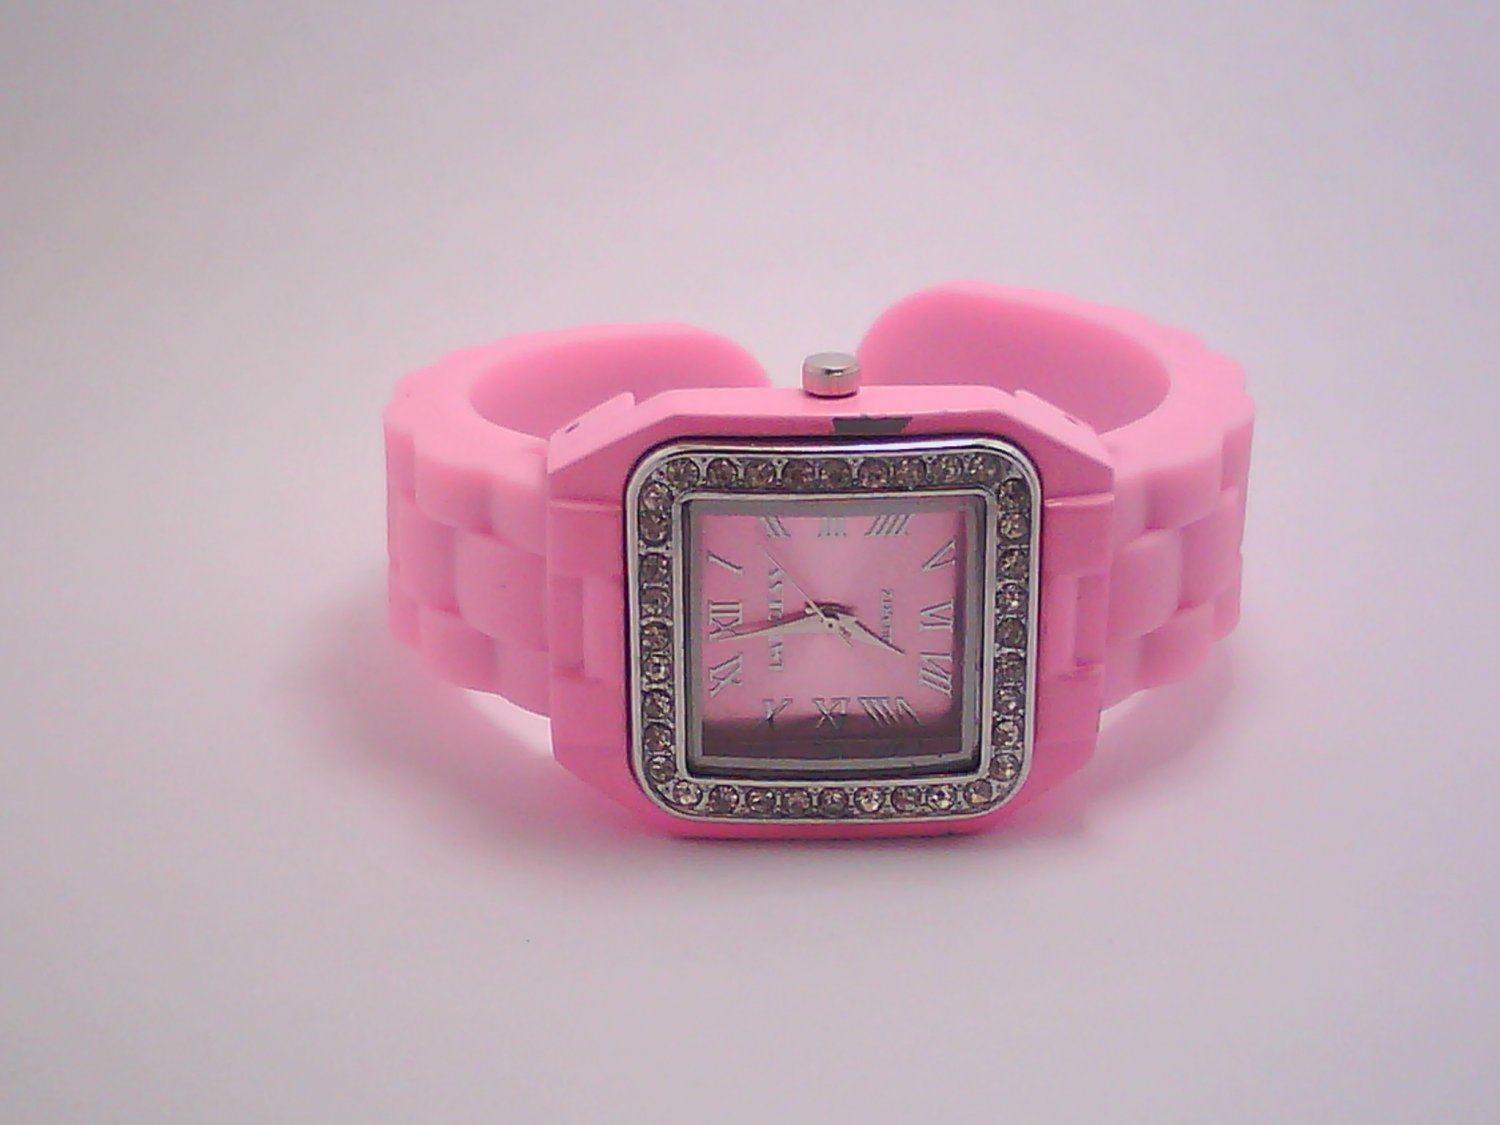 Pink Lady's Fashion Analog Watch